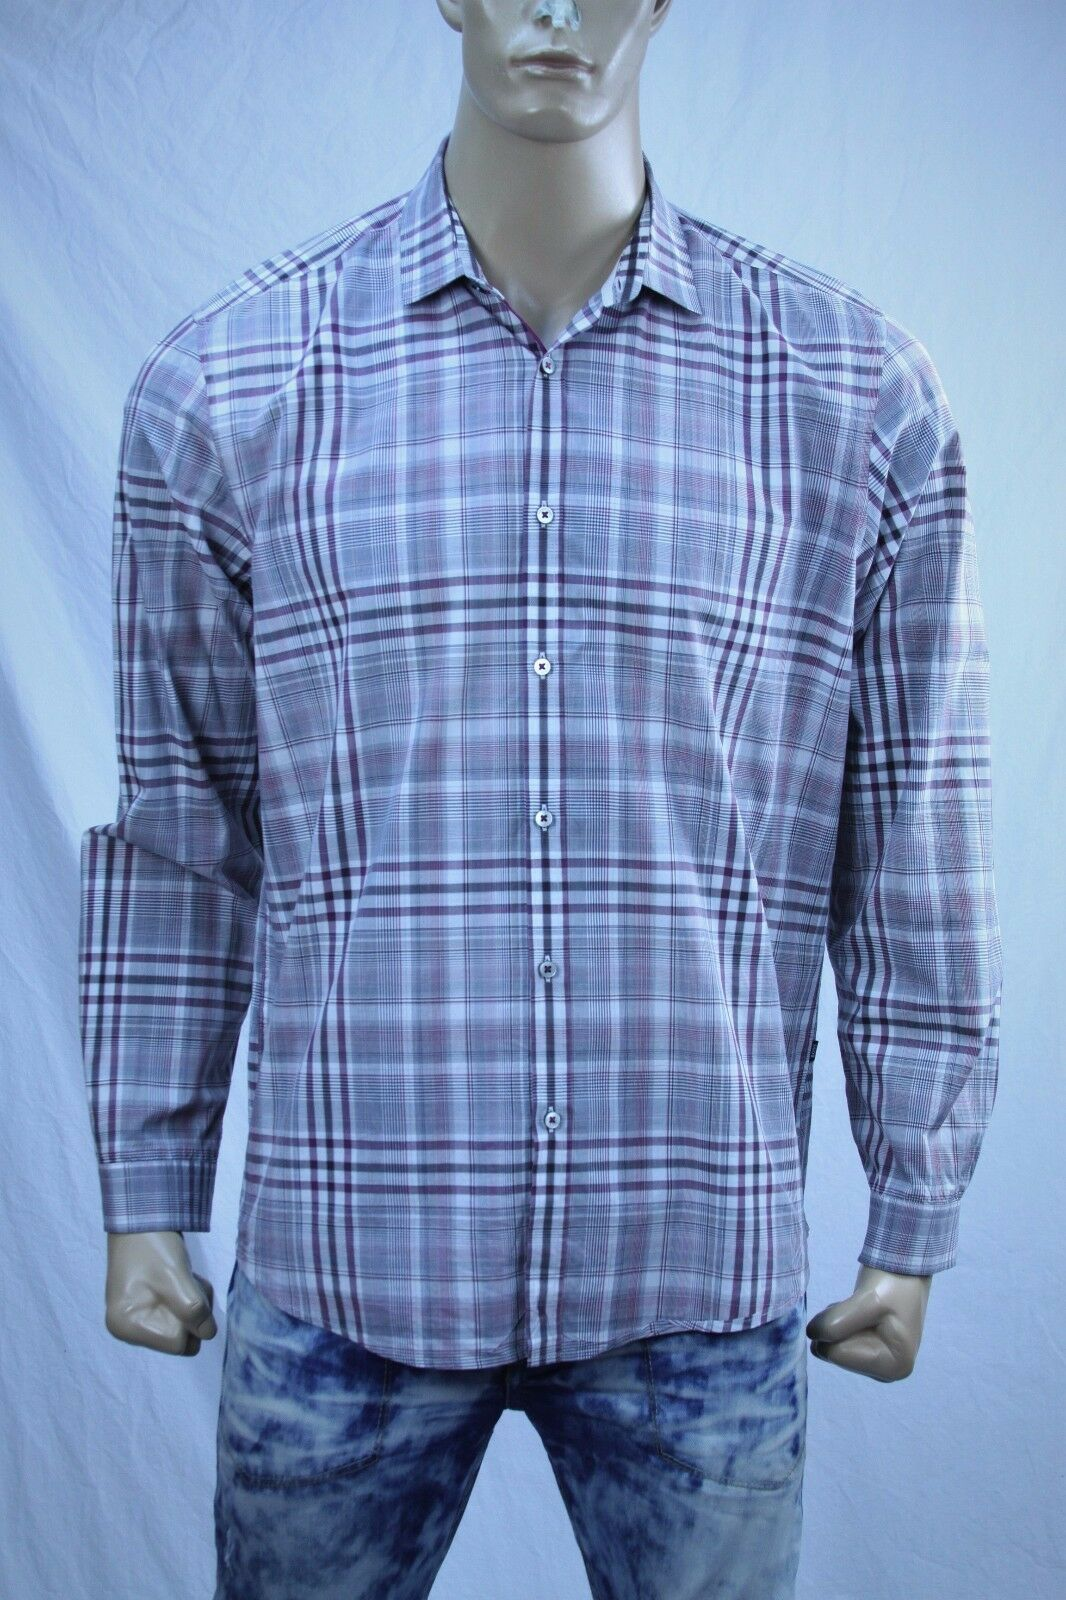 383e5c353ee Authentic Boss Hugo Boss casual cotton shirt US XL Men's nrklhy1883 ...